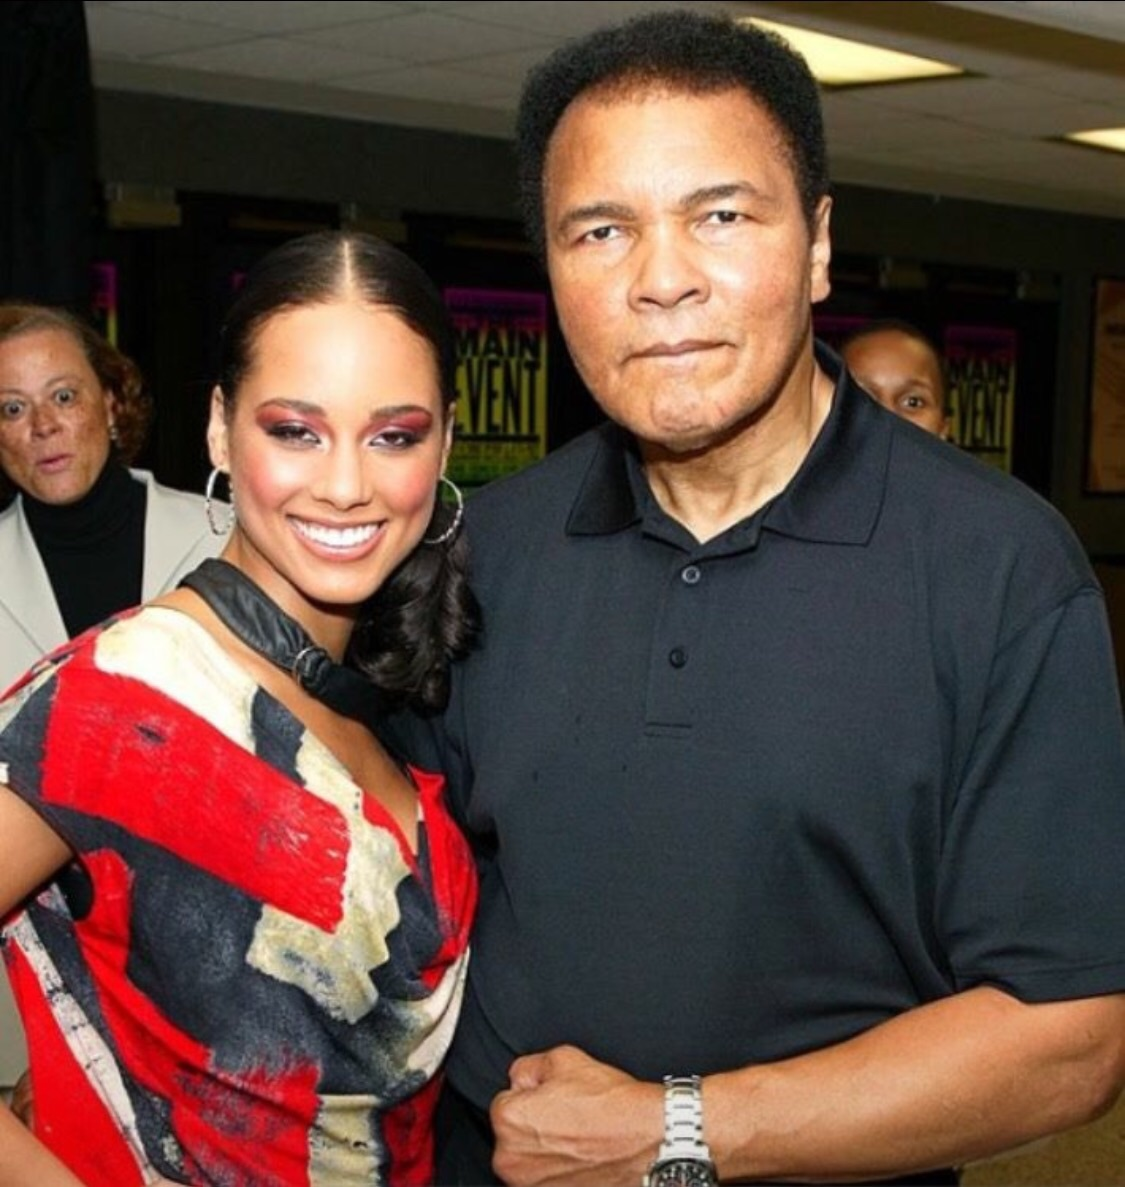 Alicia Keys shares this on her social media posing with the Greatest Champ.